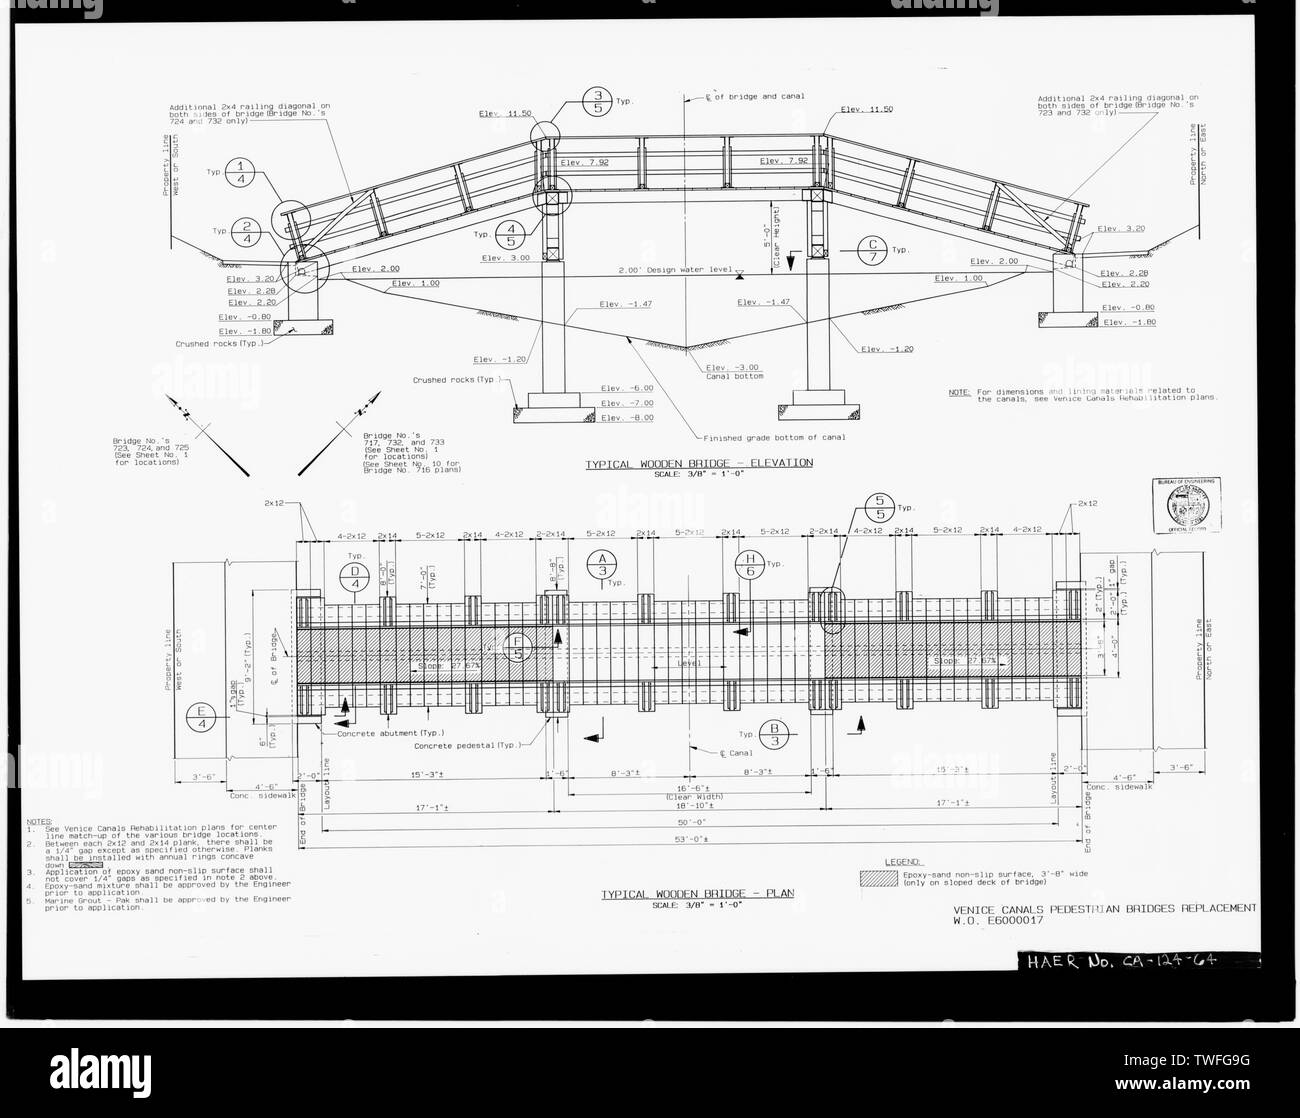 PLANS FOR PROPOSED TYPICAL WOODEN THREE-SPAN PEDESTRIAN BRIDGES Plan Sheet D-29887, Venice Canals Pedestrian Bridges Replacement, Sheet No. 2 of 14 (delineated by Manuel Bartolome, September 1989) - Venice Canals, Community of Venice, Los Angeles, Los Angeles County, CA - Stock Image